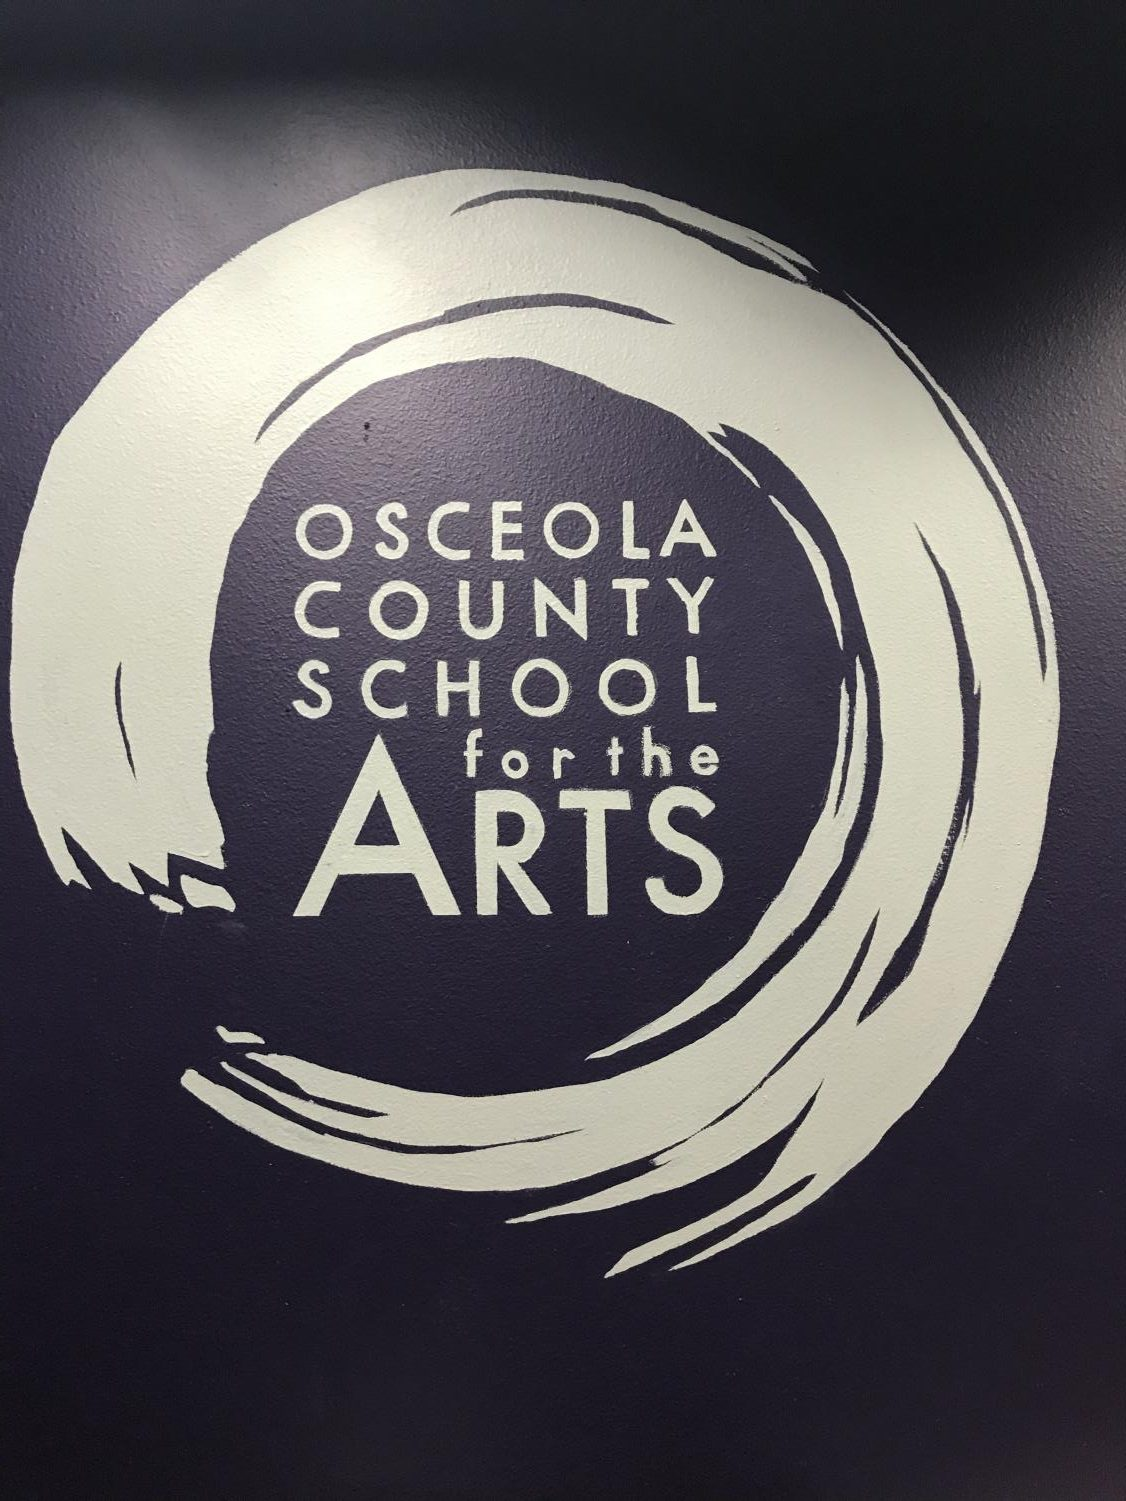 OCSA seeks to improve its pool of arts courses available to students.